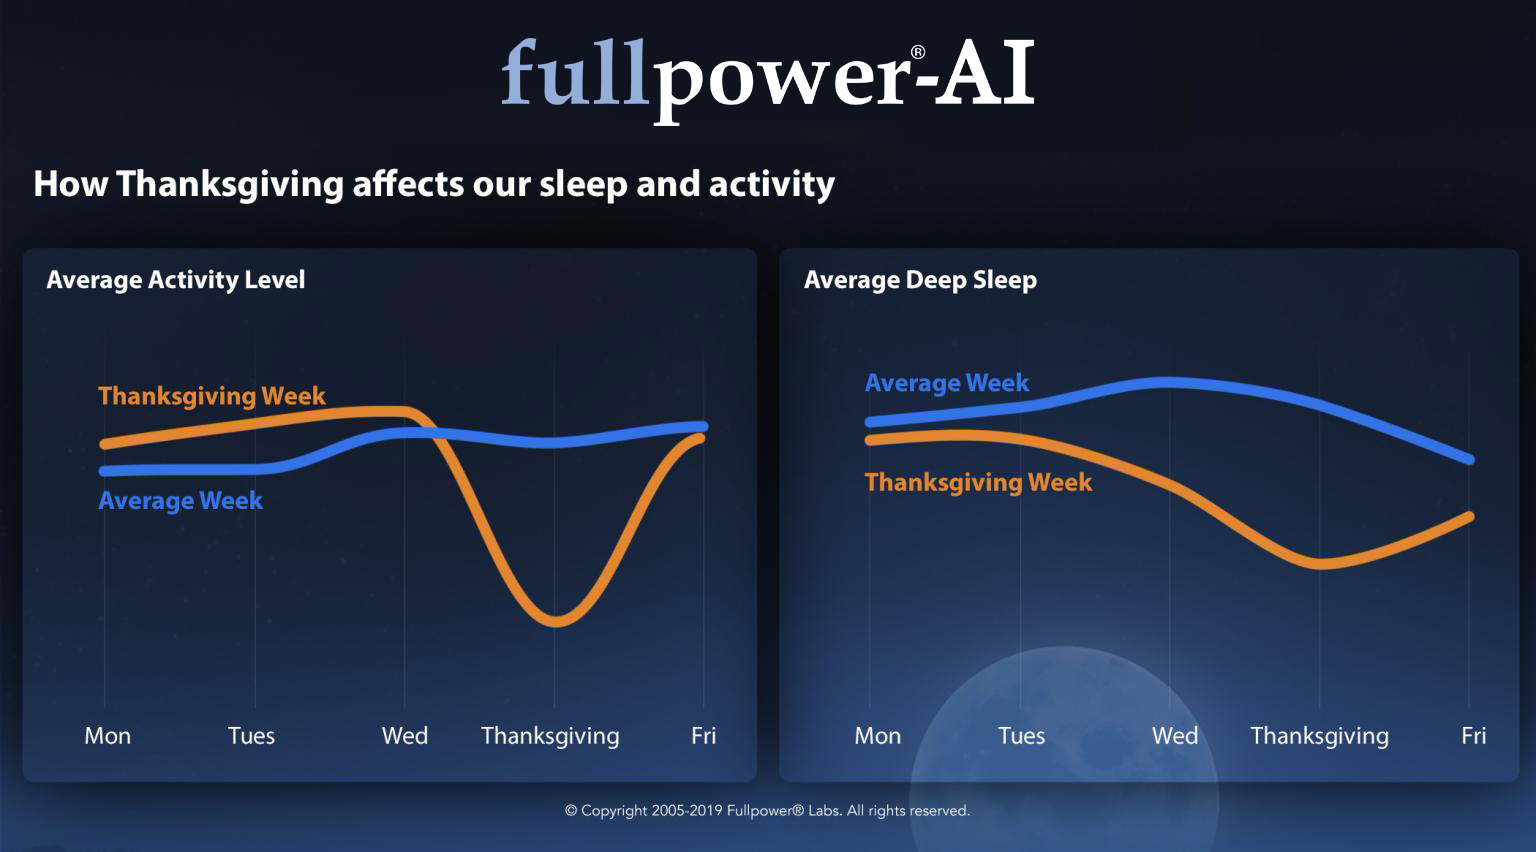 How Thanksgiving affects our sleep and activity